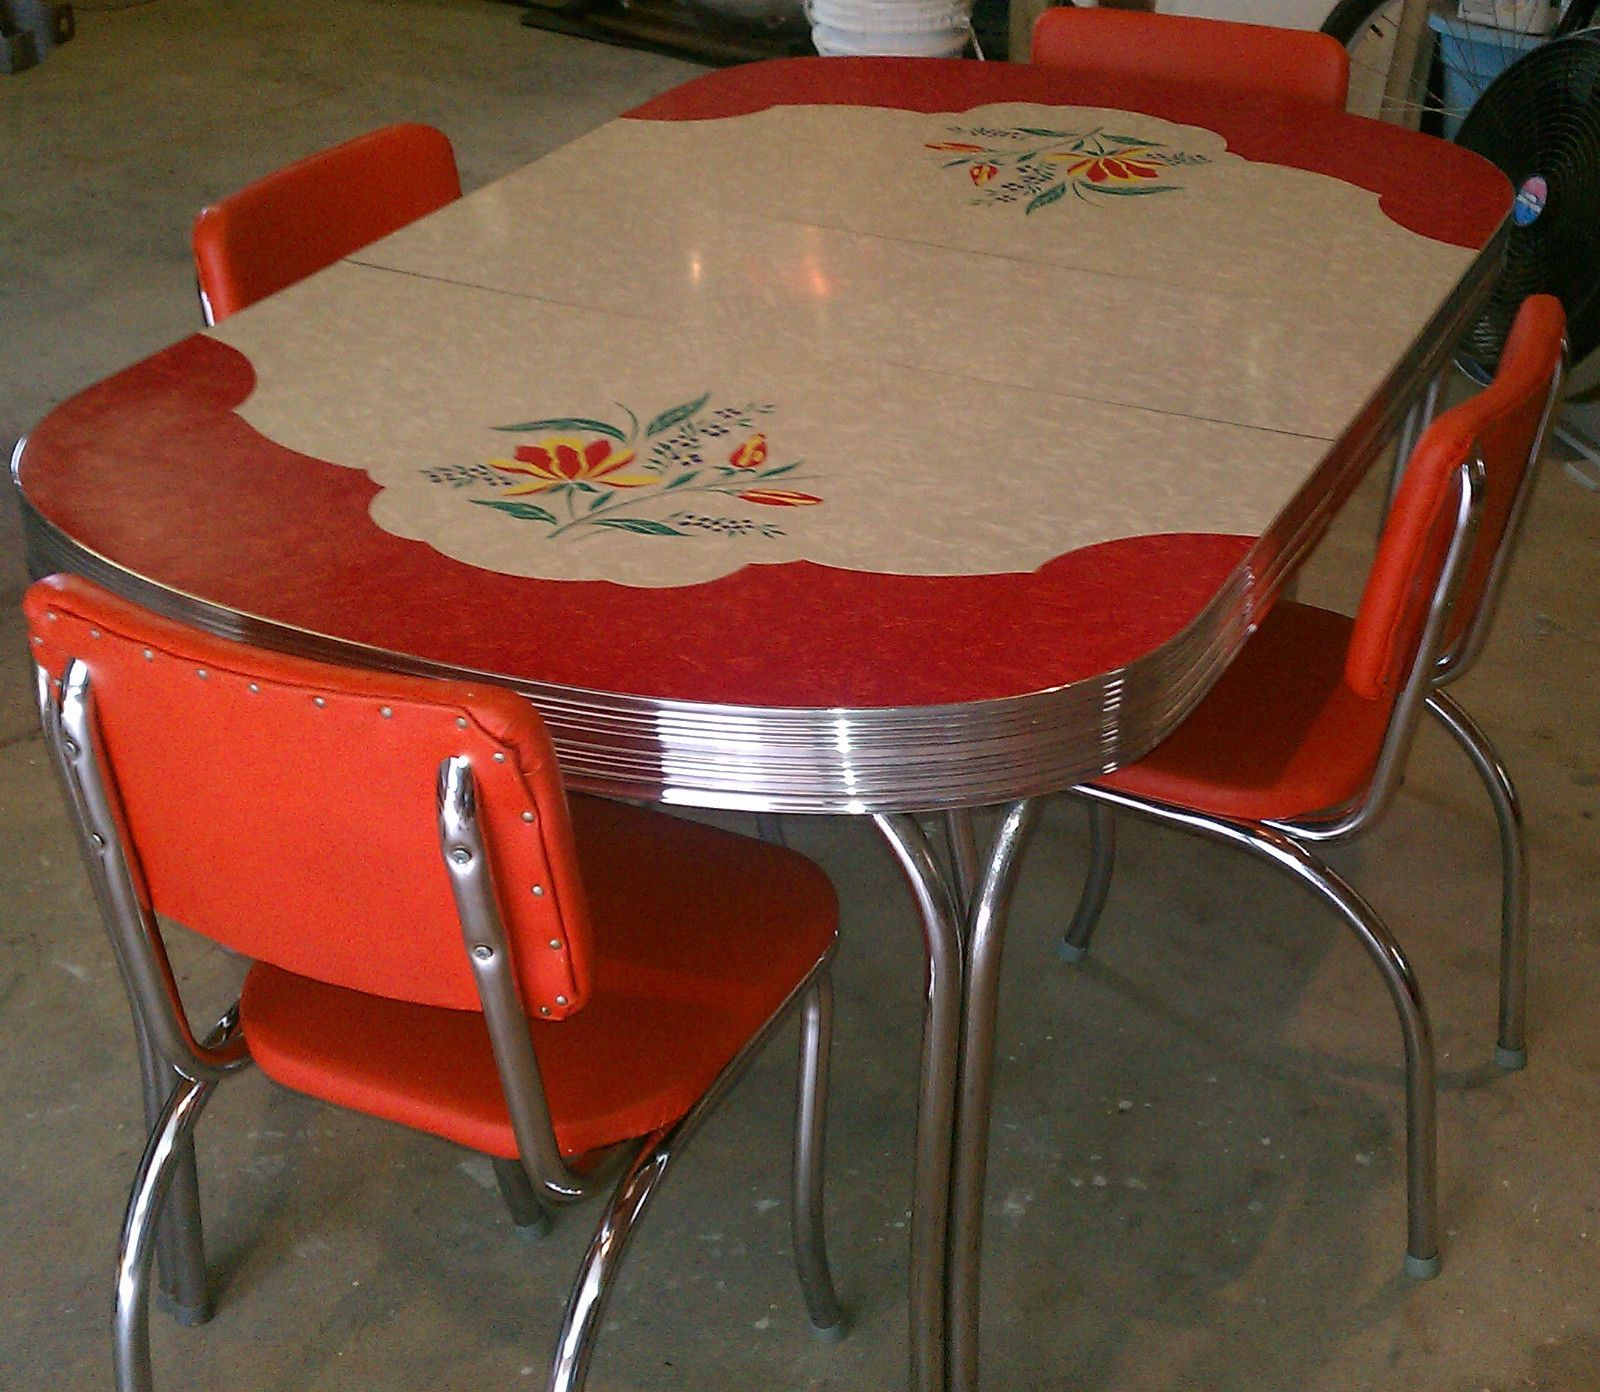 Vintage Kitchen Formica Table 4 Chairs Chrome Orange Red  : 572e65a42a5ababf9ec4b355d966df16 from www.pinterest.com size 1600 x 1392 jpeg 656kB